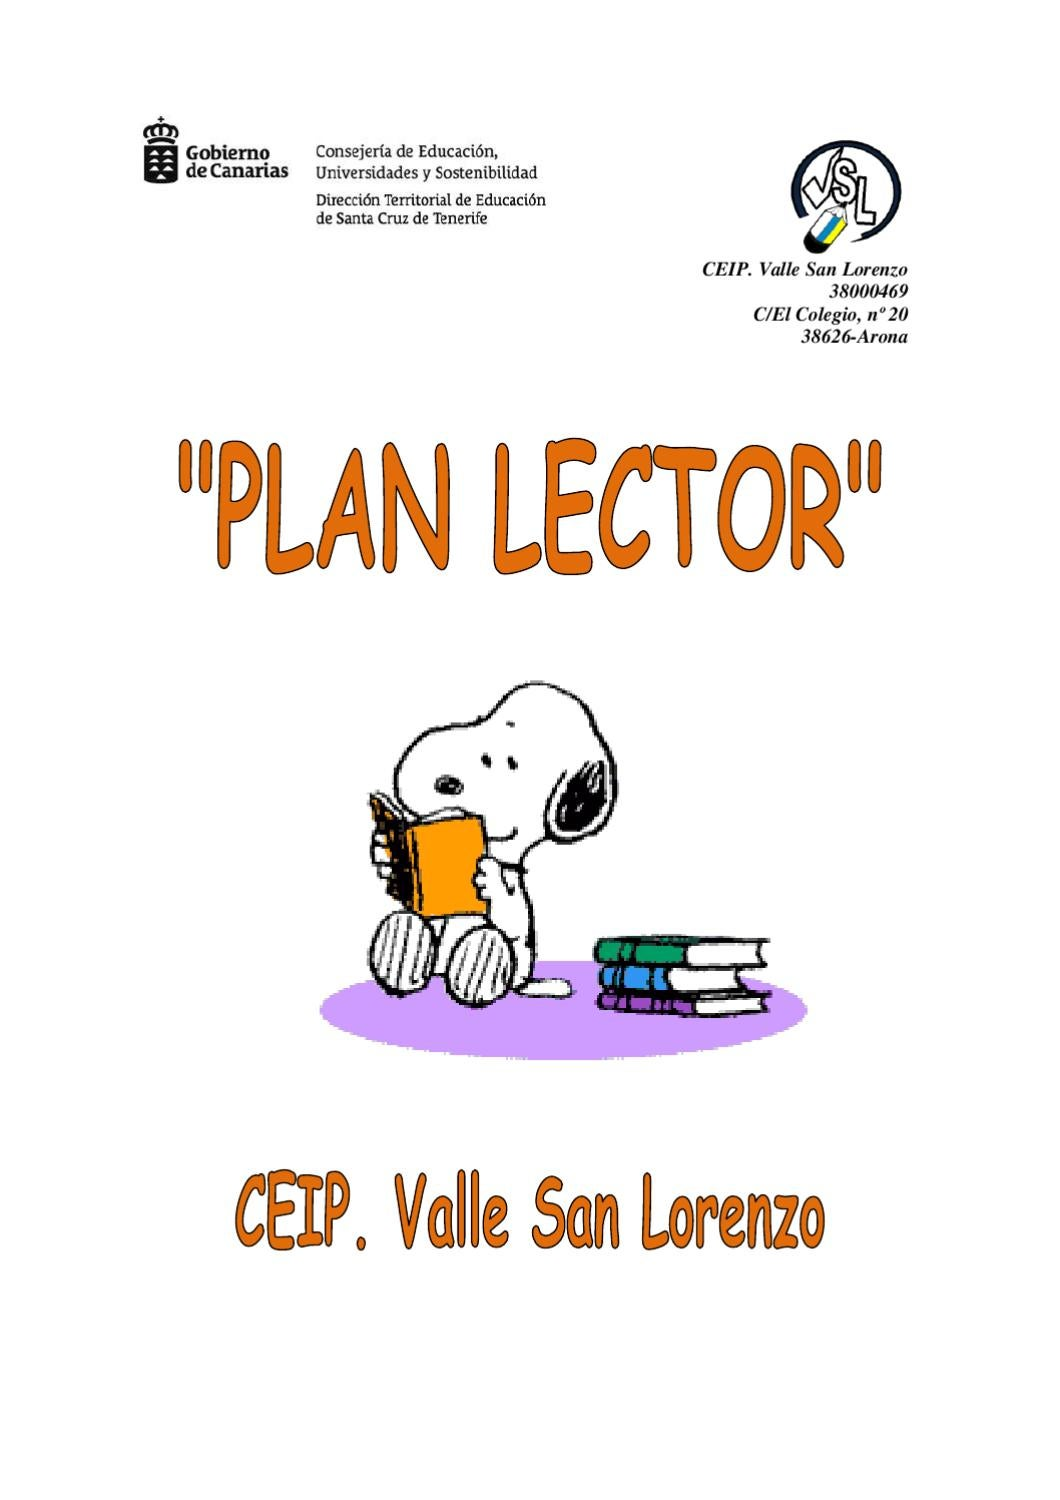 Lector De Libros Color Plan Lector By Ceip Valle San Lorenzo 38000469 Issuu